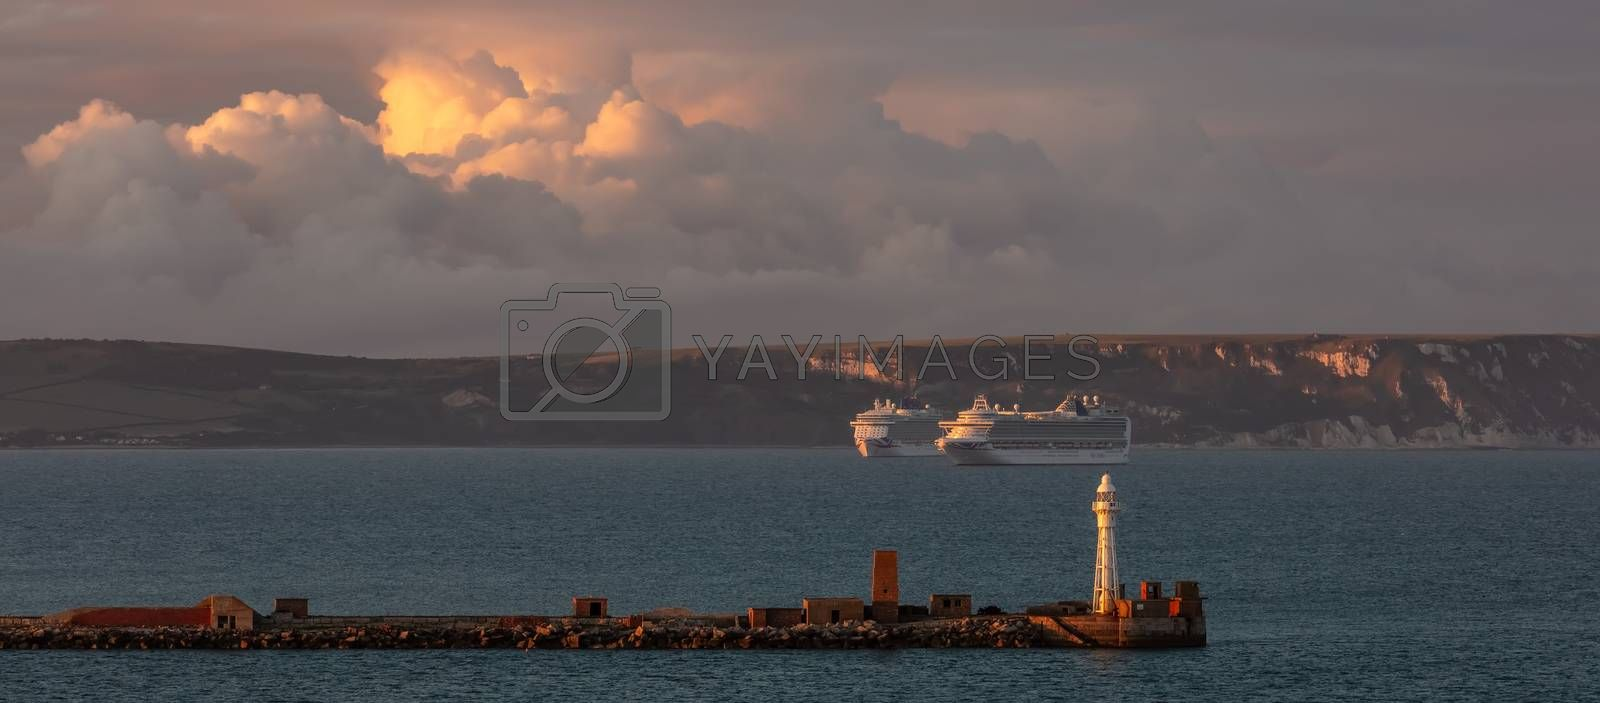 Portland, United Kingdom - July 1, 2020: Beautiful panoramic shot of Portland harbour lighthouse with two P&O cruiseships anchored in the distance in Weymouth Bay. Beautiful sunset clouds.